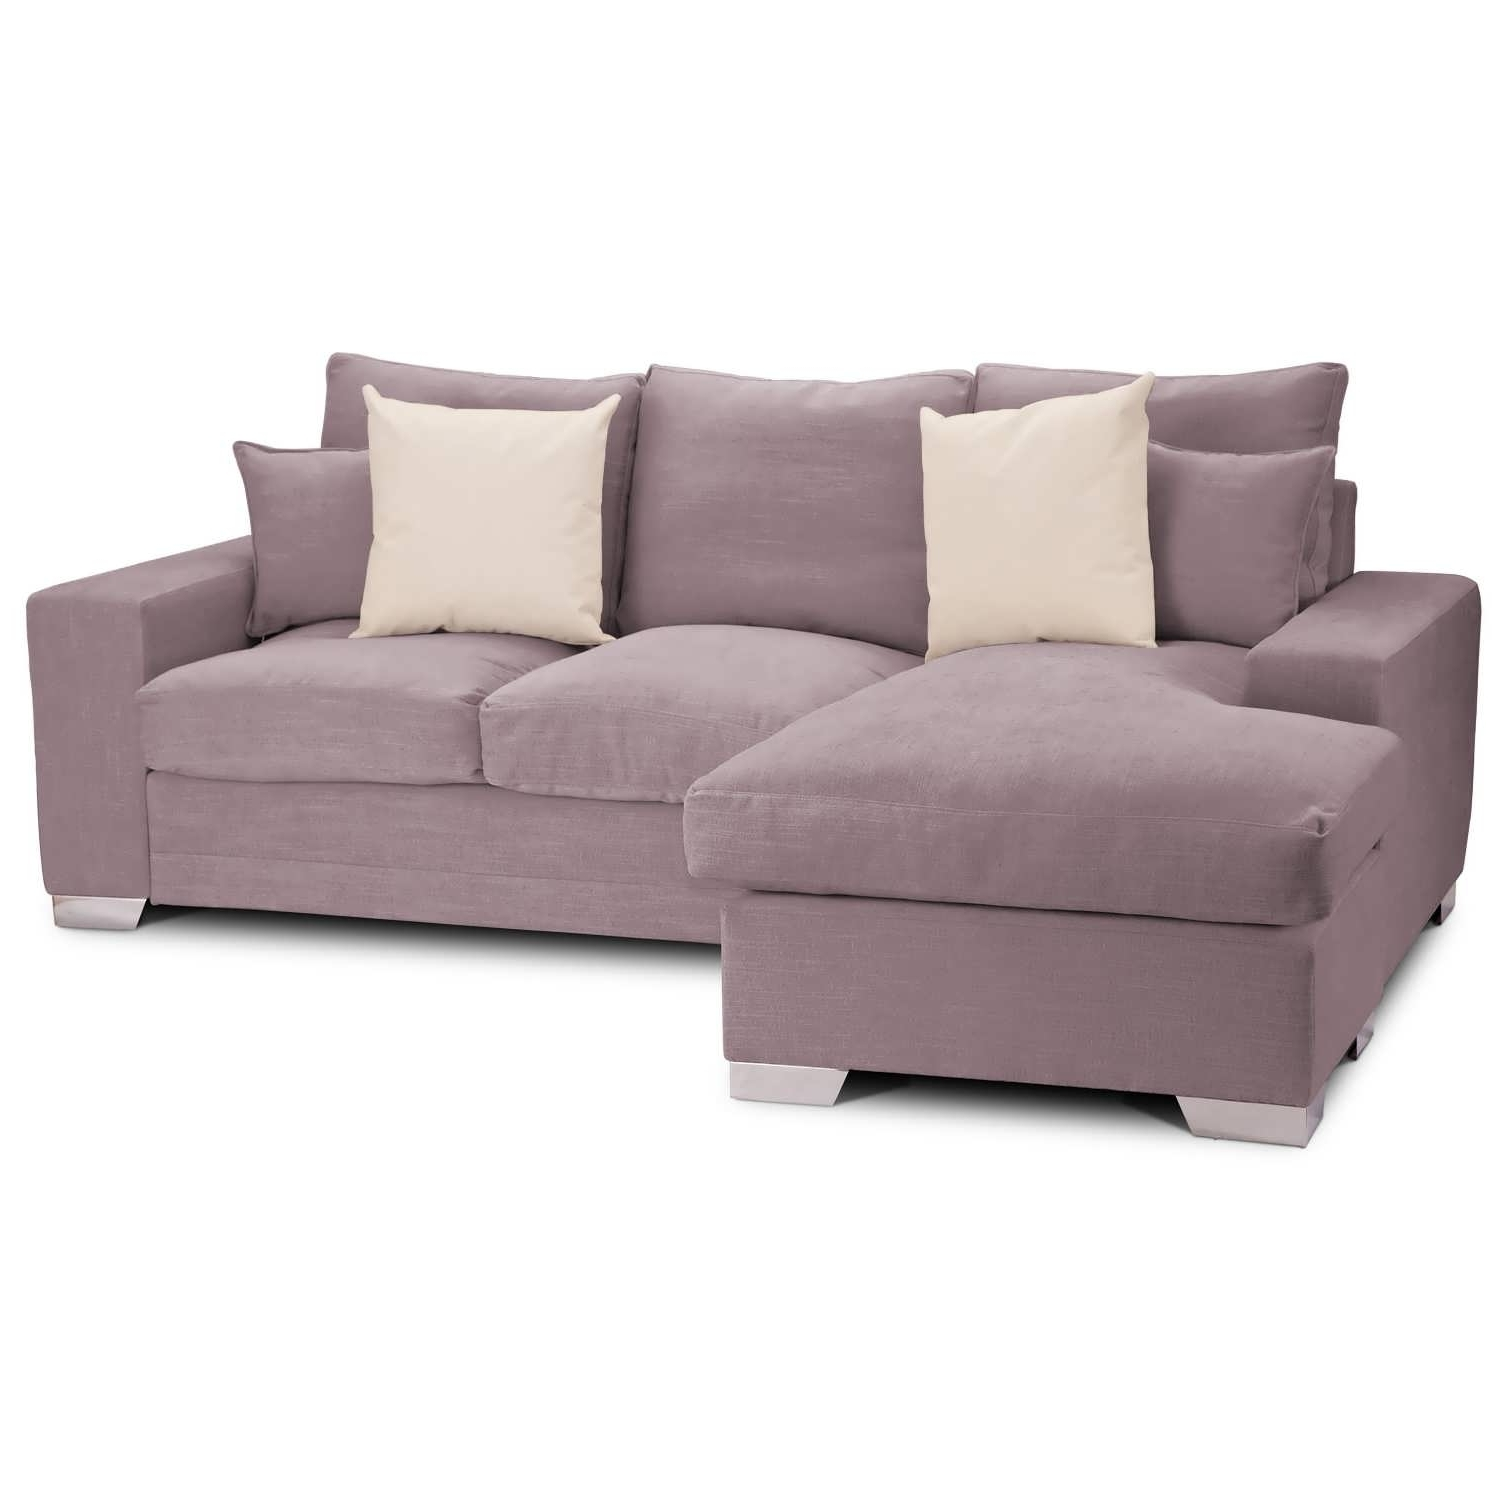 Small Chaise Sofas Regarding 2018 Sofa : Gray Sofa Set Sectional Sofas Small Chaise Sofa Gray (View 9 of 15)